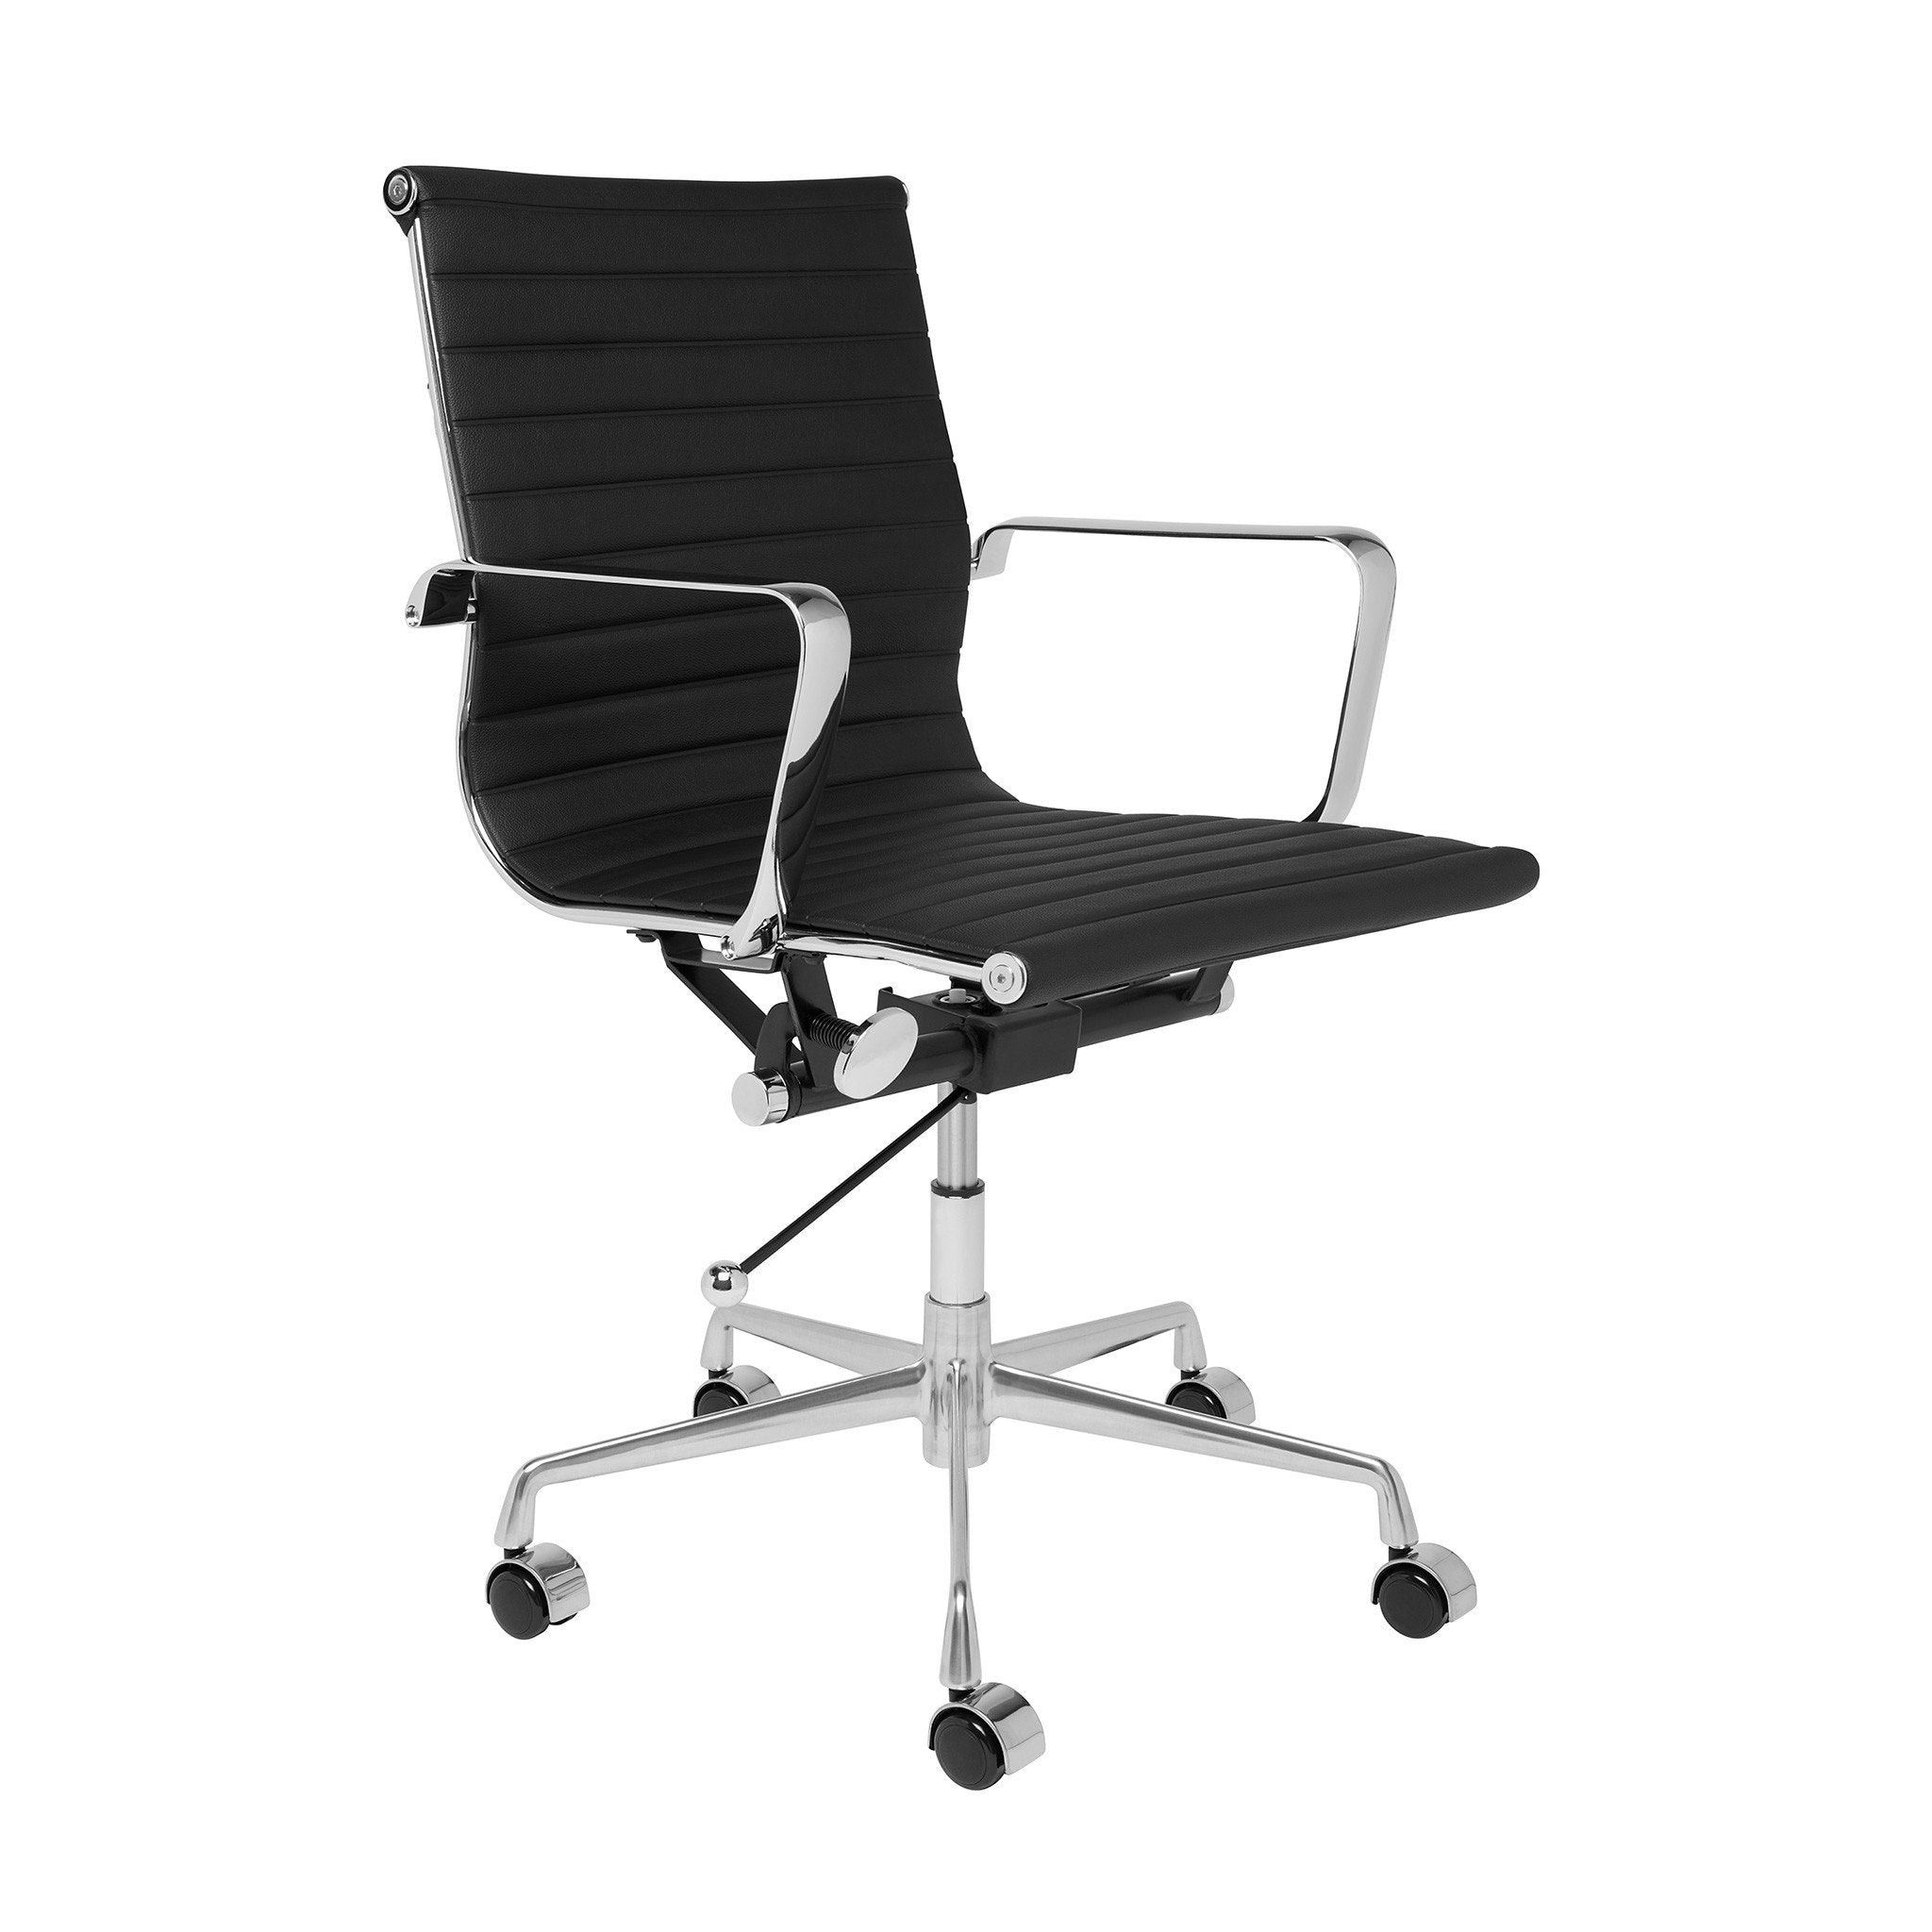 Eames office chair replica Black Eames Management Chair Midcentury Modern Furniture Vancouver Canada The Modern Source The Modern Source Eames Management Chair Midcentury Modern Furniture Vancouver